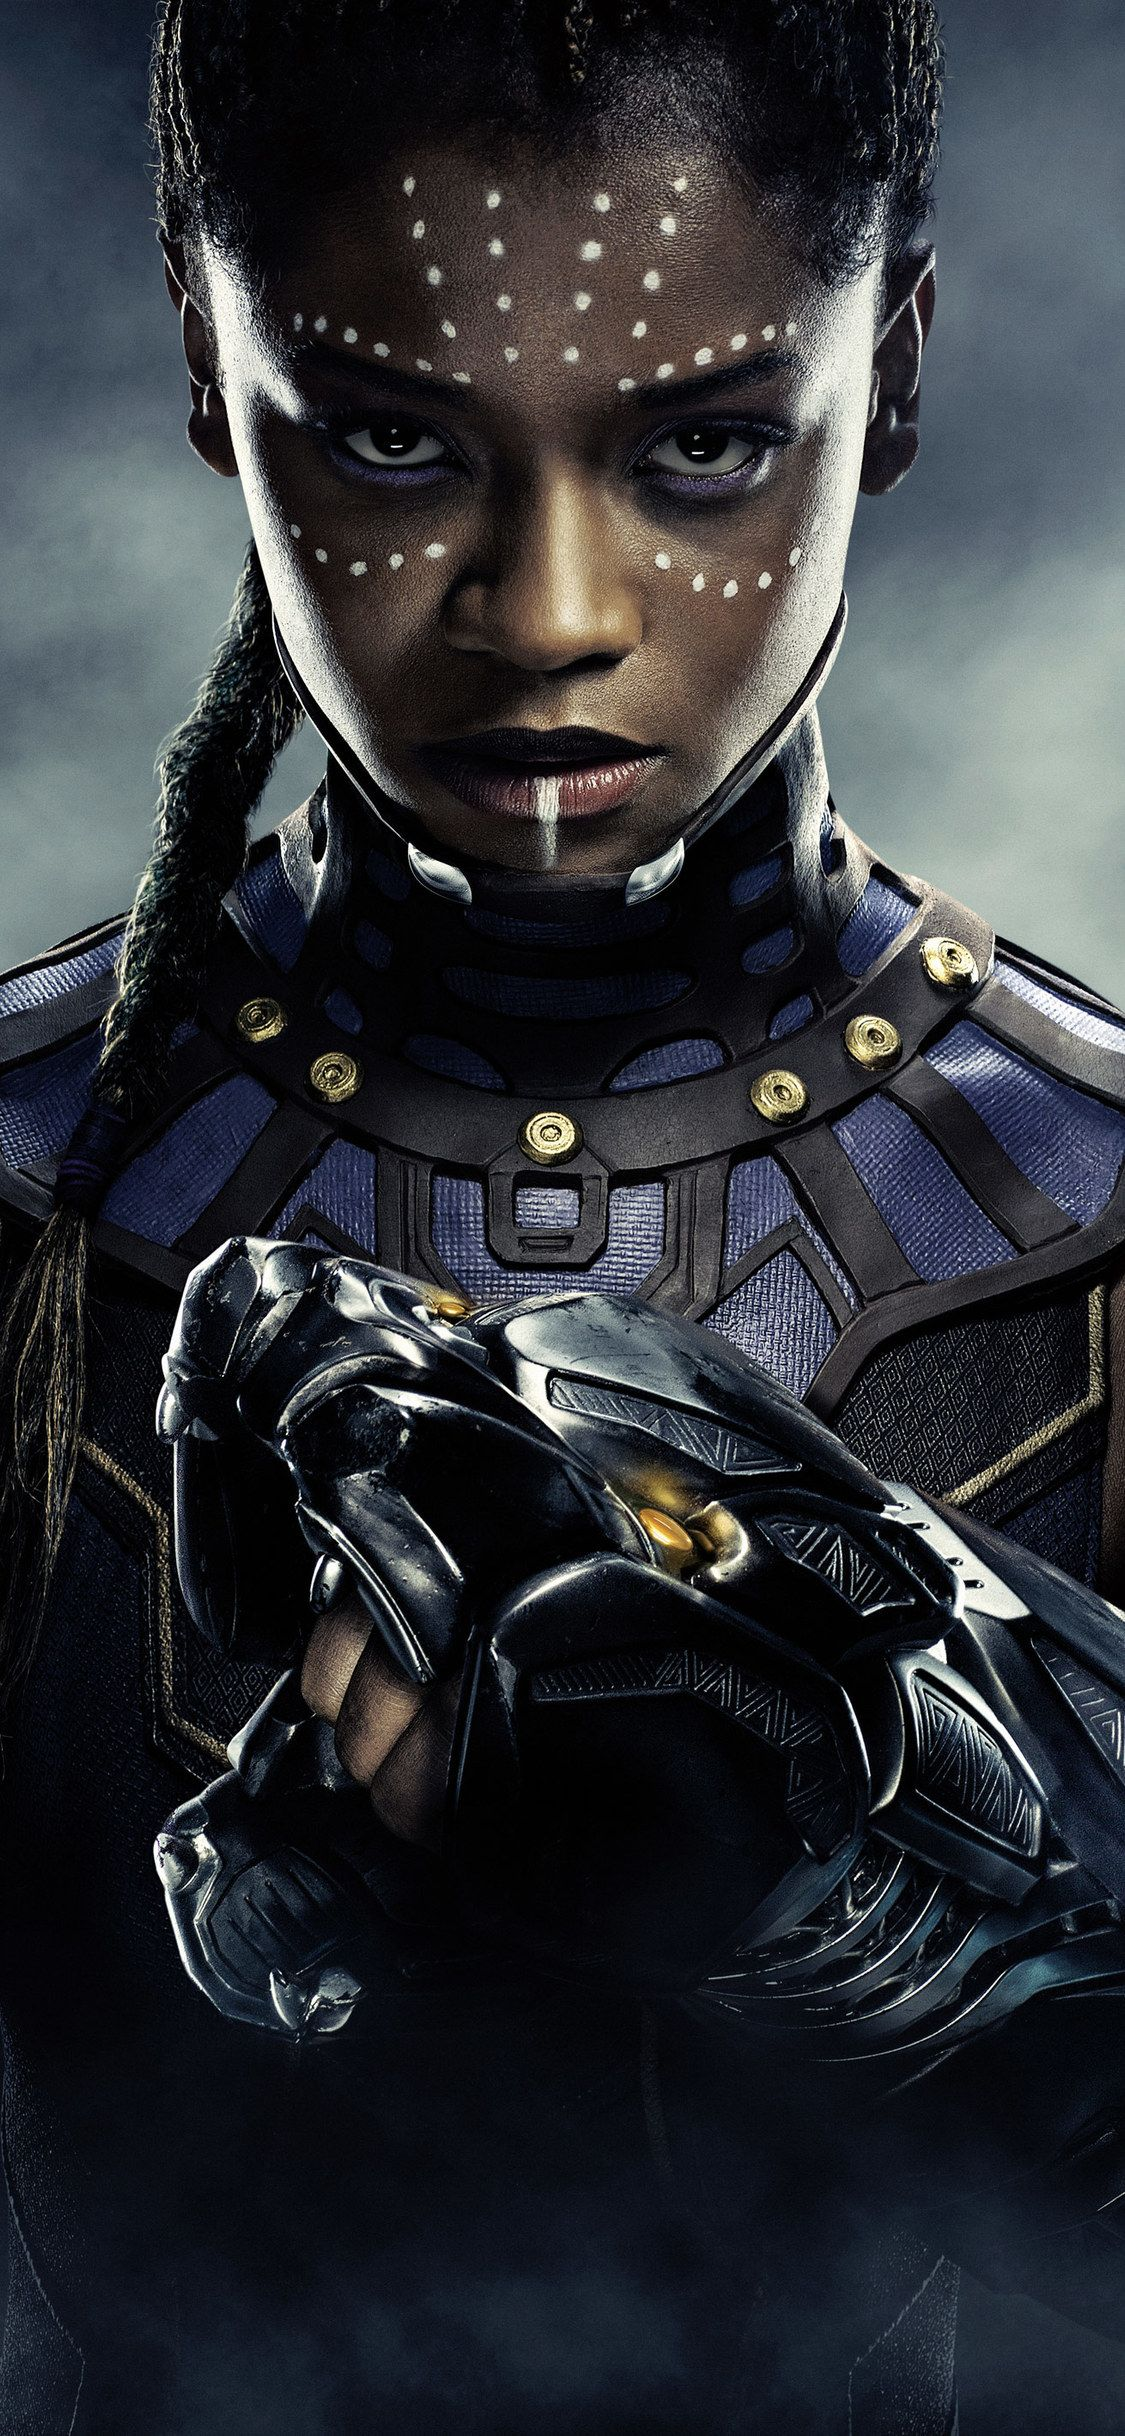 1125x2436 Letitia Wright Black Panther 5k Iphone Xs Iphone 10 Iphone X Hd 4k Wallpapers Black Panther Character Black Panther Marvel Black Panther Movie Poster